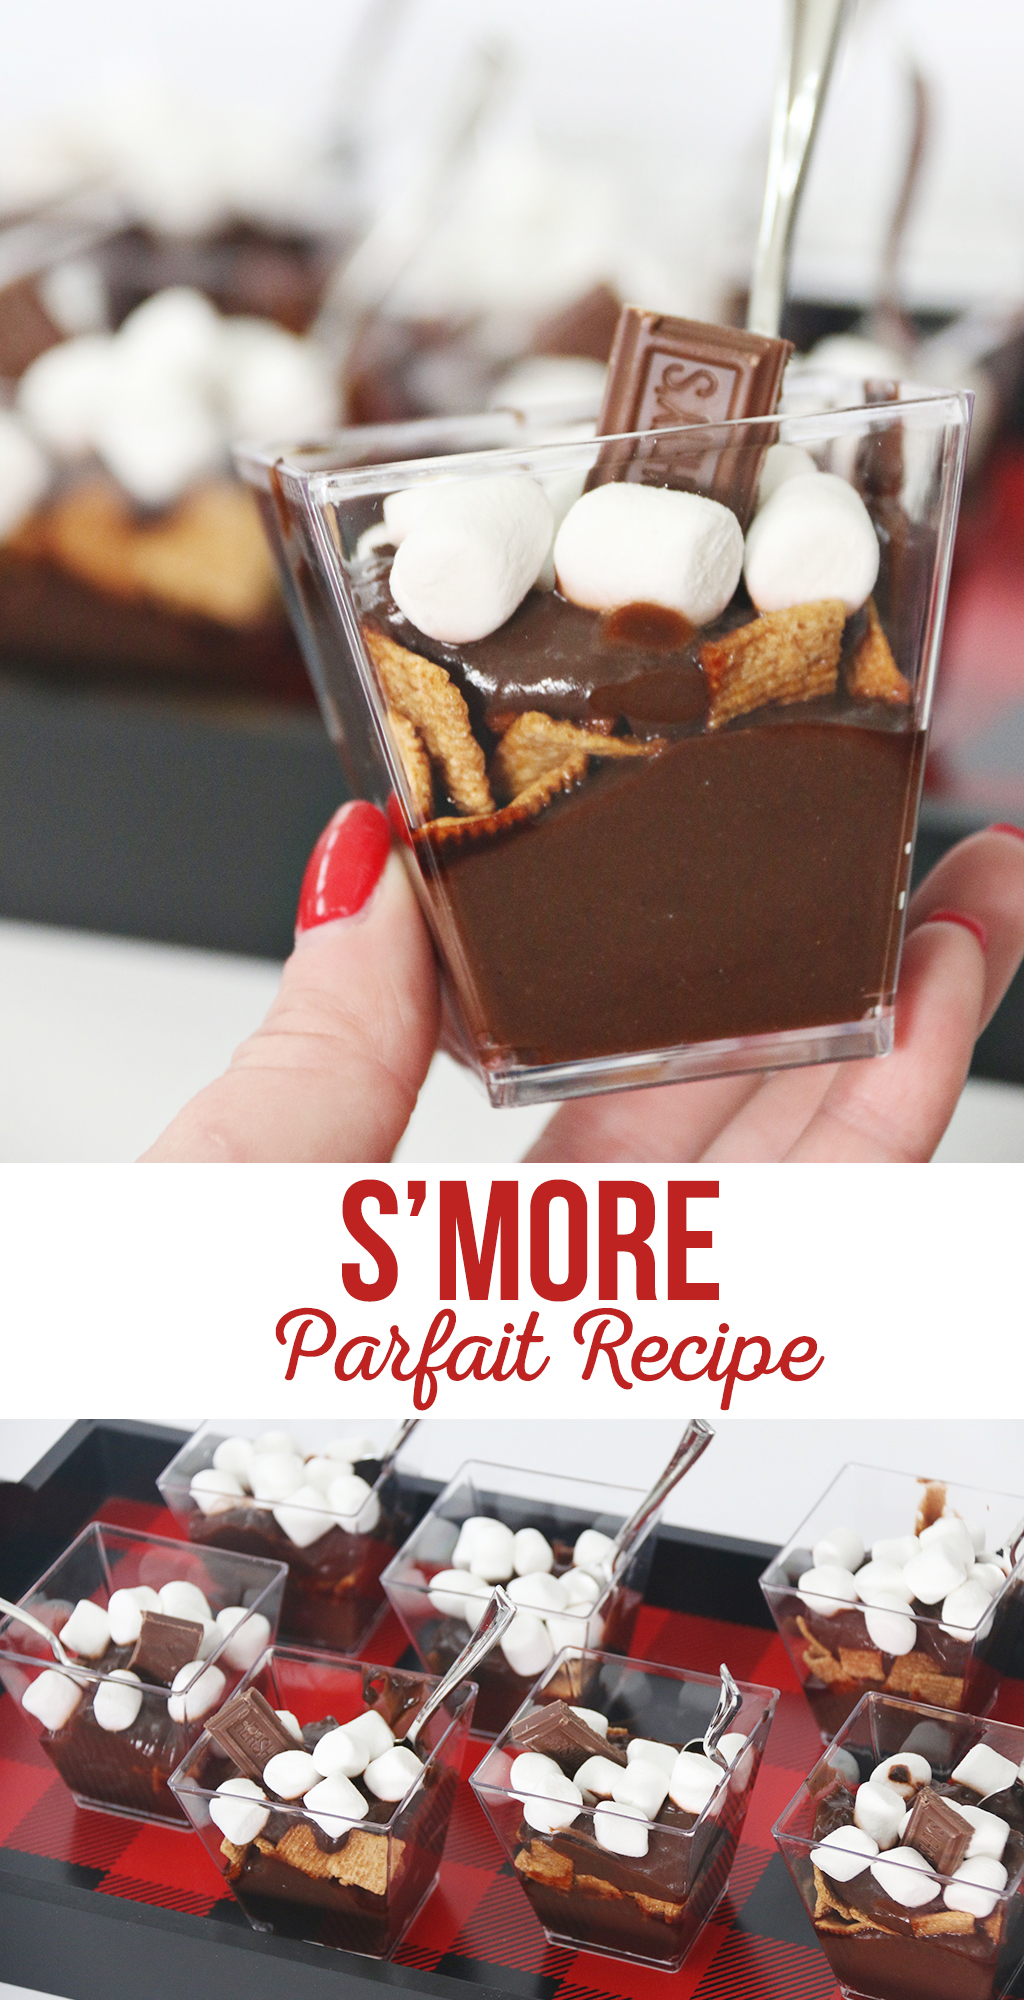 S'more Parfait Recipe